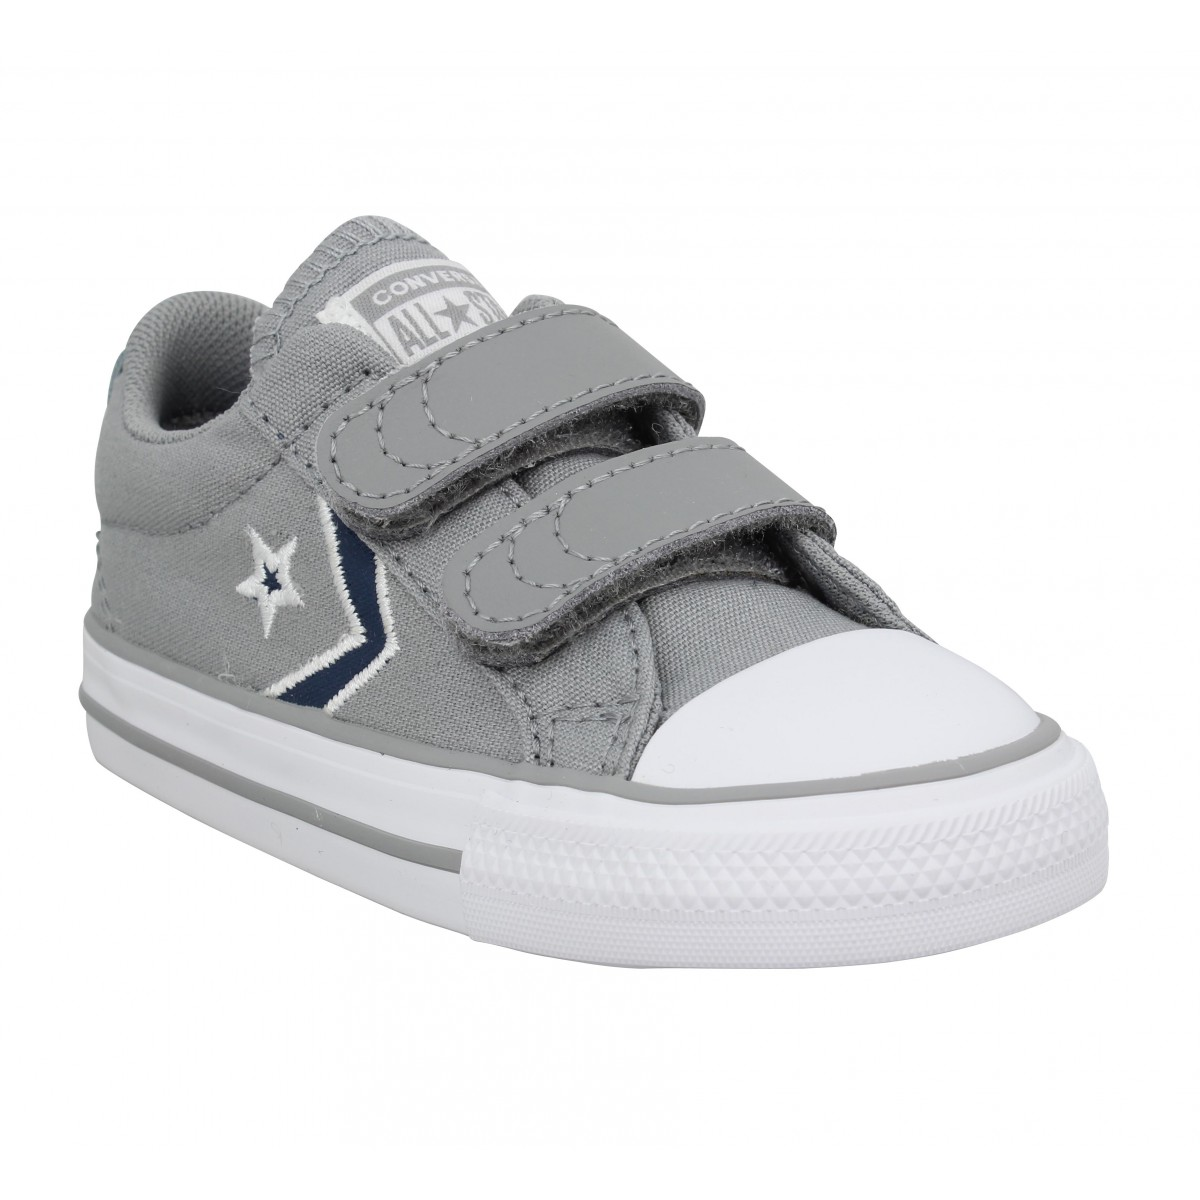 Baskets CONVERSE Star Player 2V OX toile Enfant Dolphin